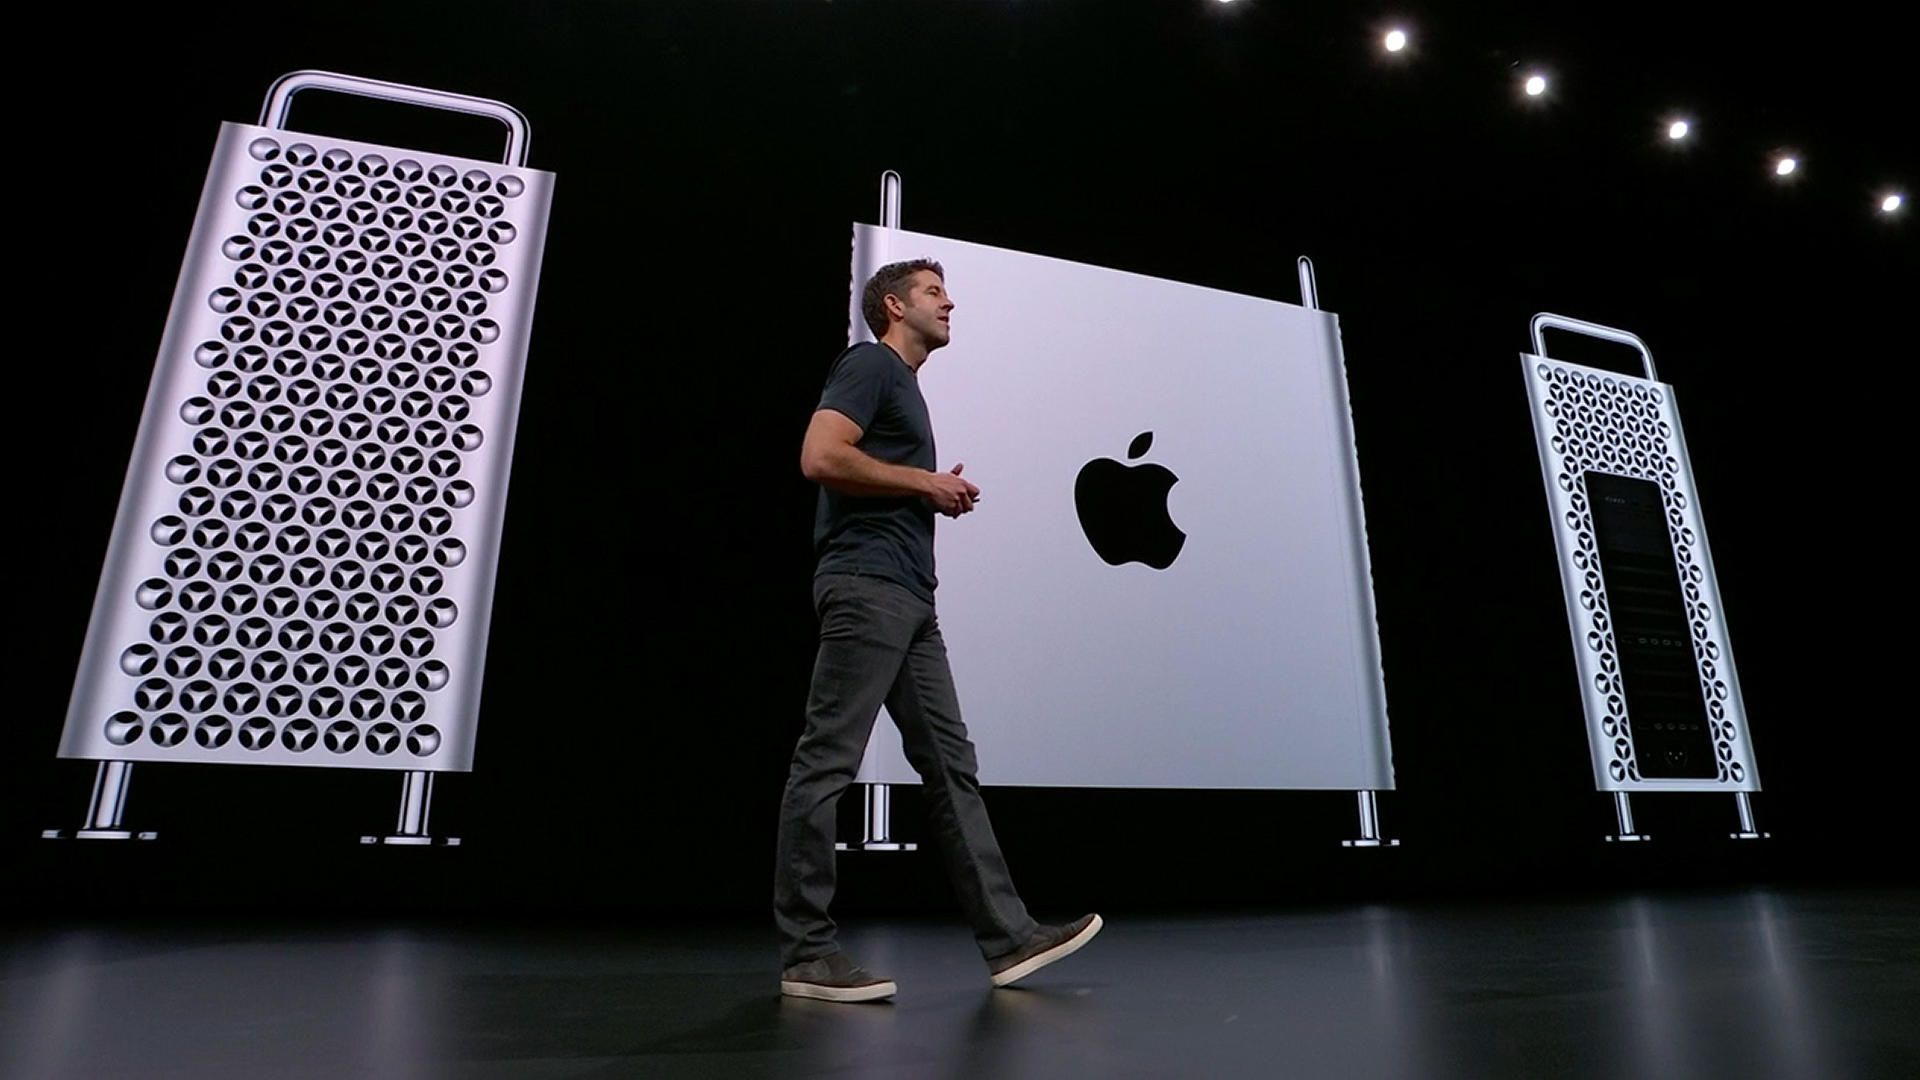 New Mac Pro design sort of looks like a cheese grater